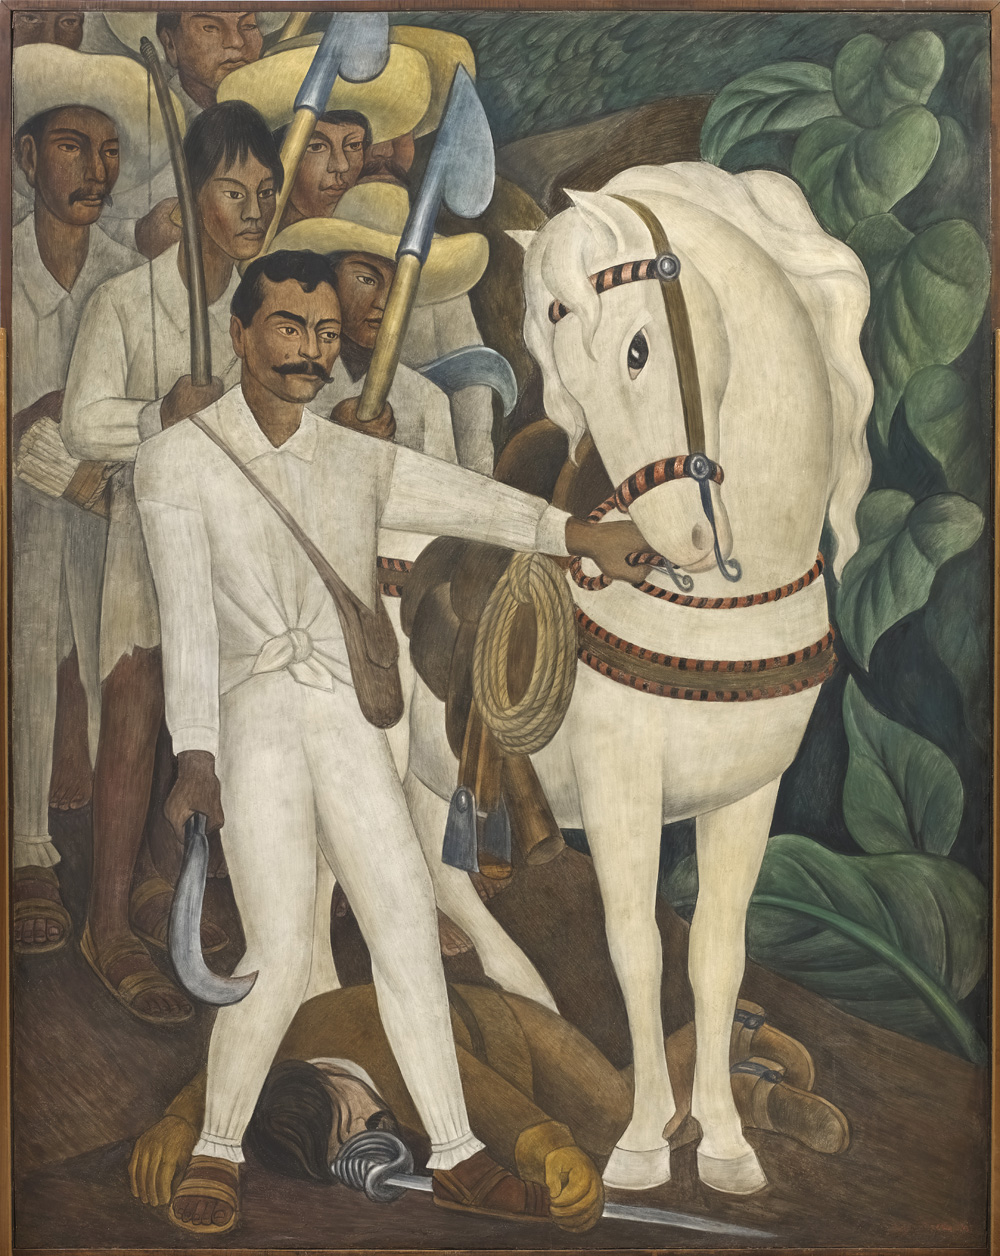 "Diego Rivera. Agrarian Leader Zapata, 1931. Fresco on reinforced cement in a galvanized-steel framework, 93 ¾ x 74"" (238.1 x 188 cm). The Museum of Modern Art, New York. Abby Aldrich Rockefeller Fund © 2011 Banco de México Diego Rivera & Frida Kahlo Museums Trust, México, D.F./Artists Rights Society (ARS), New York"